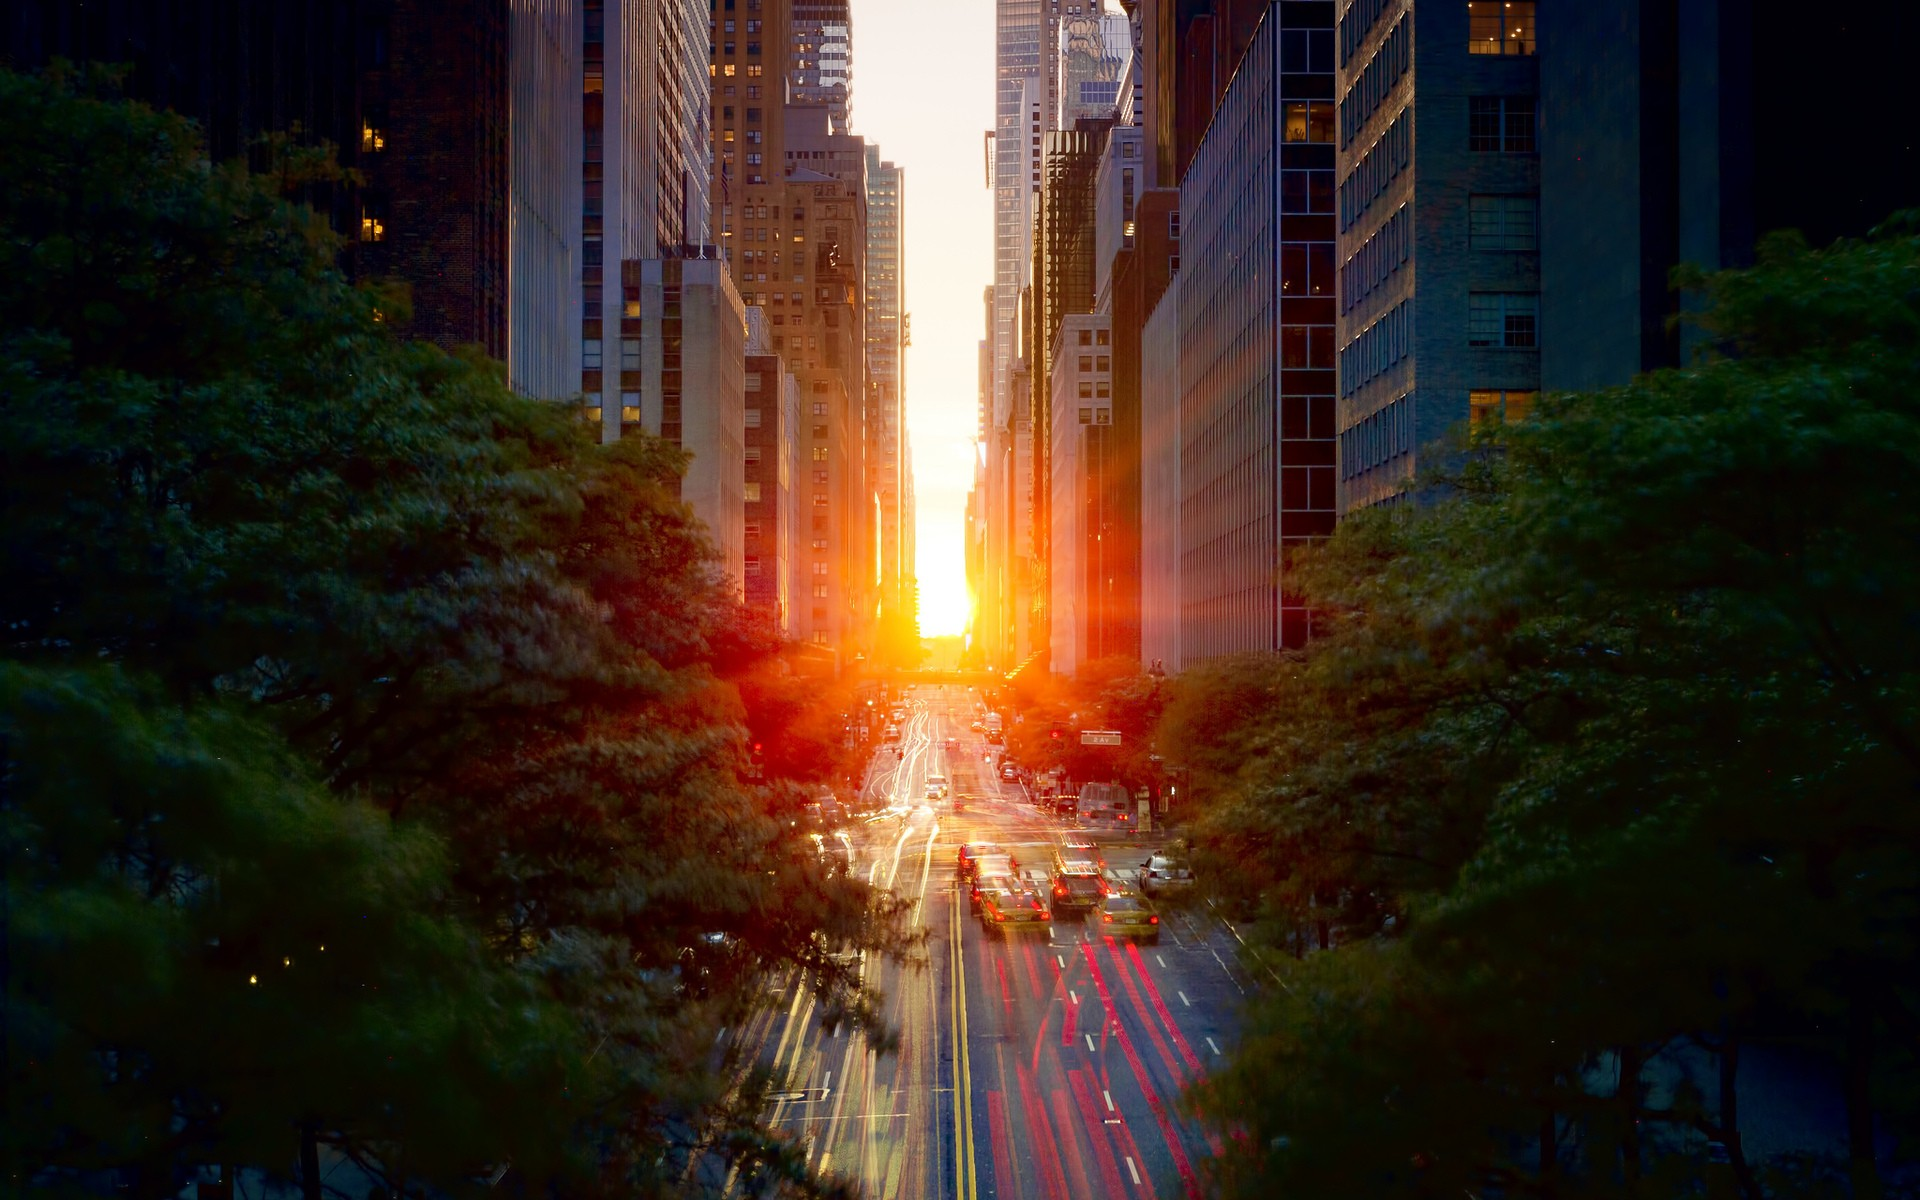 manhattanhenge-new-york-hd-wallpaper.jpg